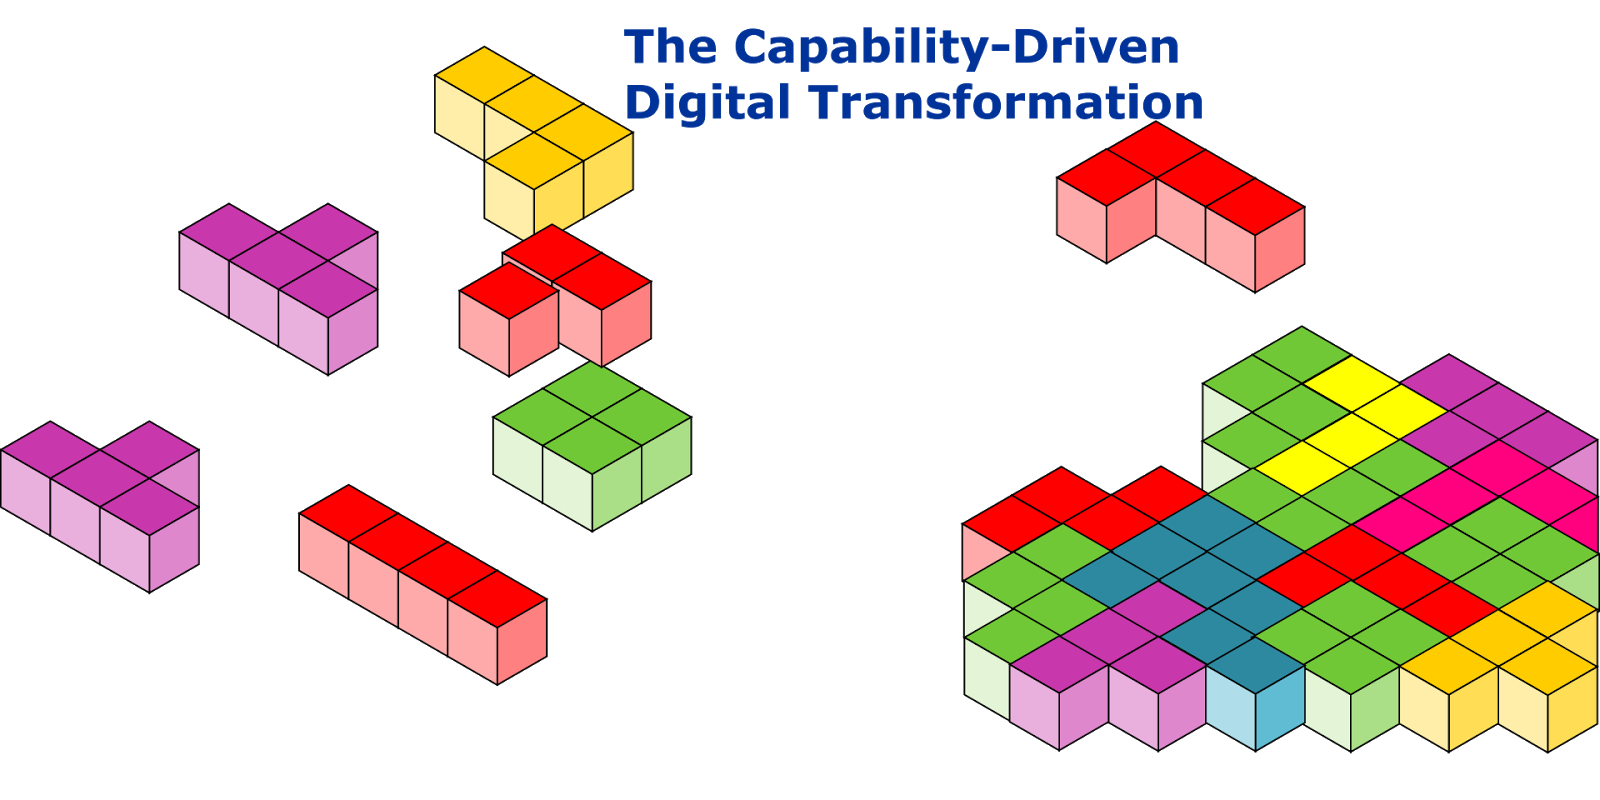 hight resolution of digital capabilities are the fundamental building blocks in digital transformations with which companies can transform business models customer experiences